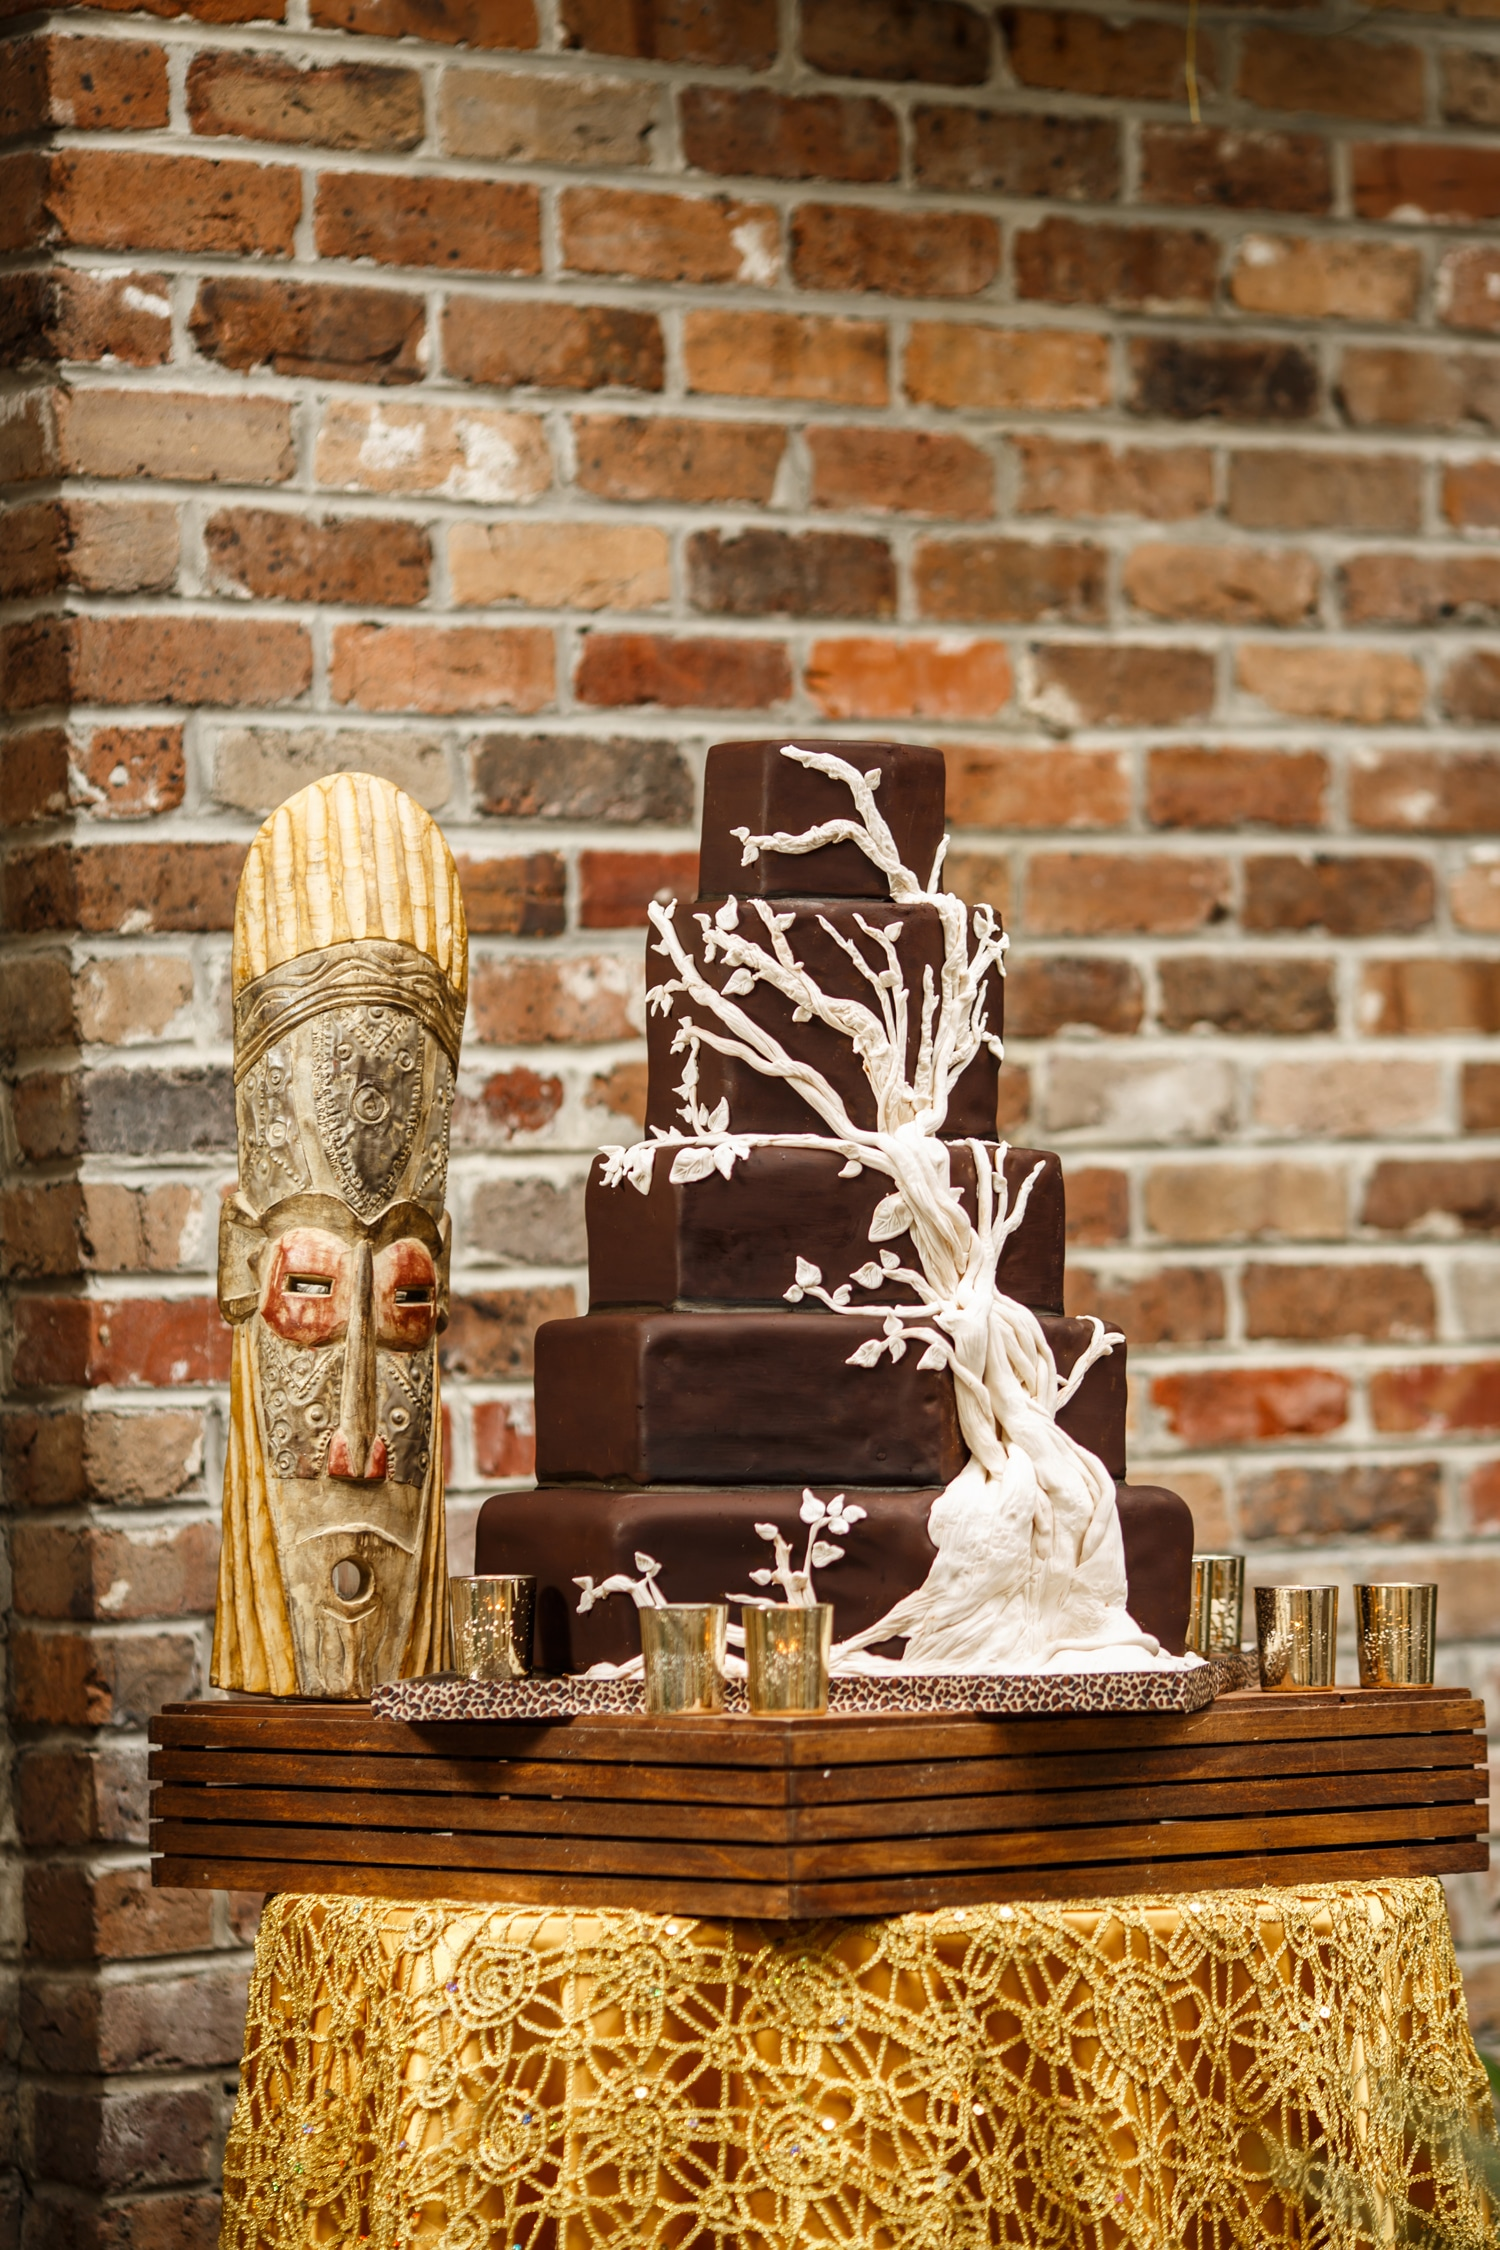 Gambino's Bakery Wedding Cake. Photo: North Photography